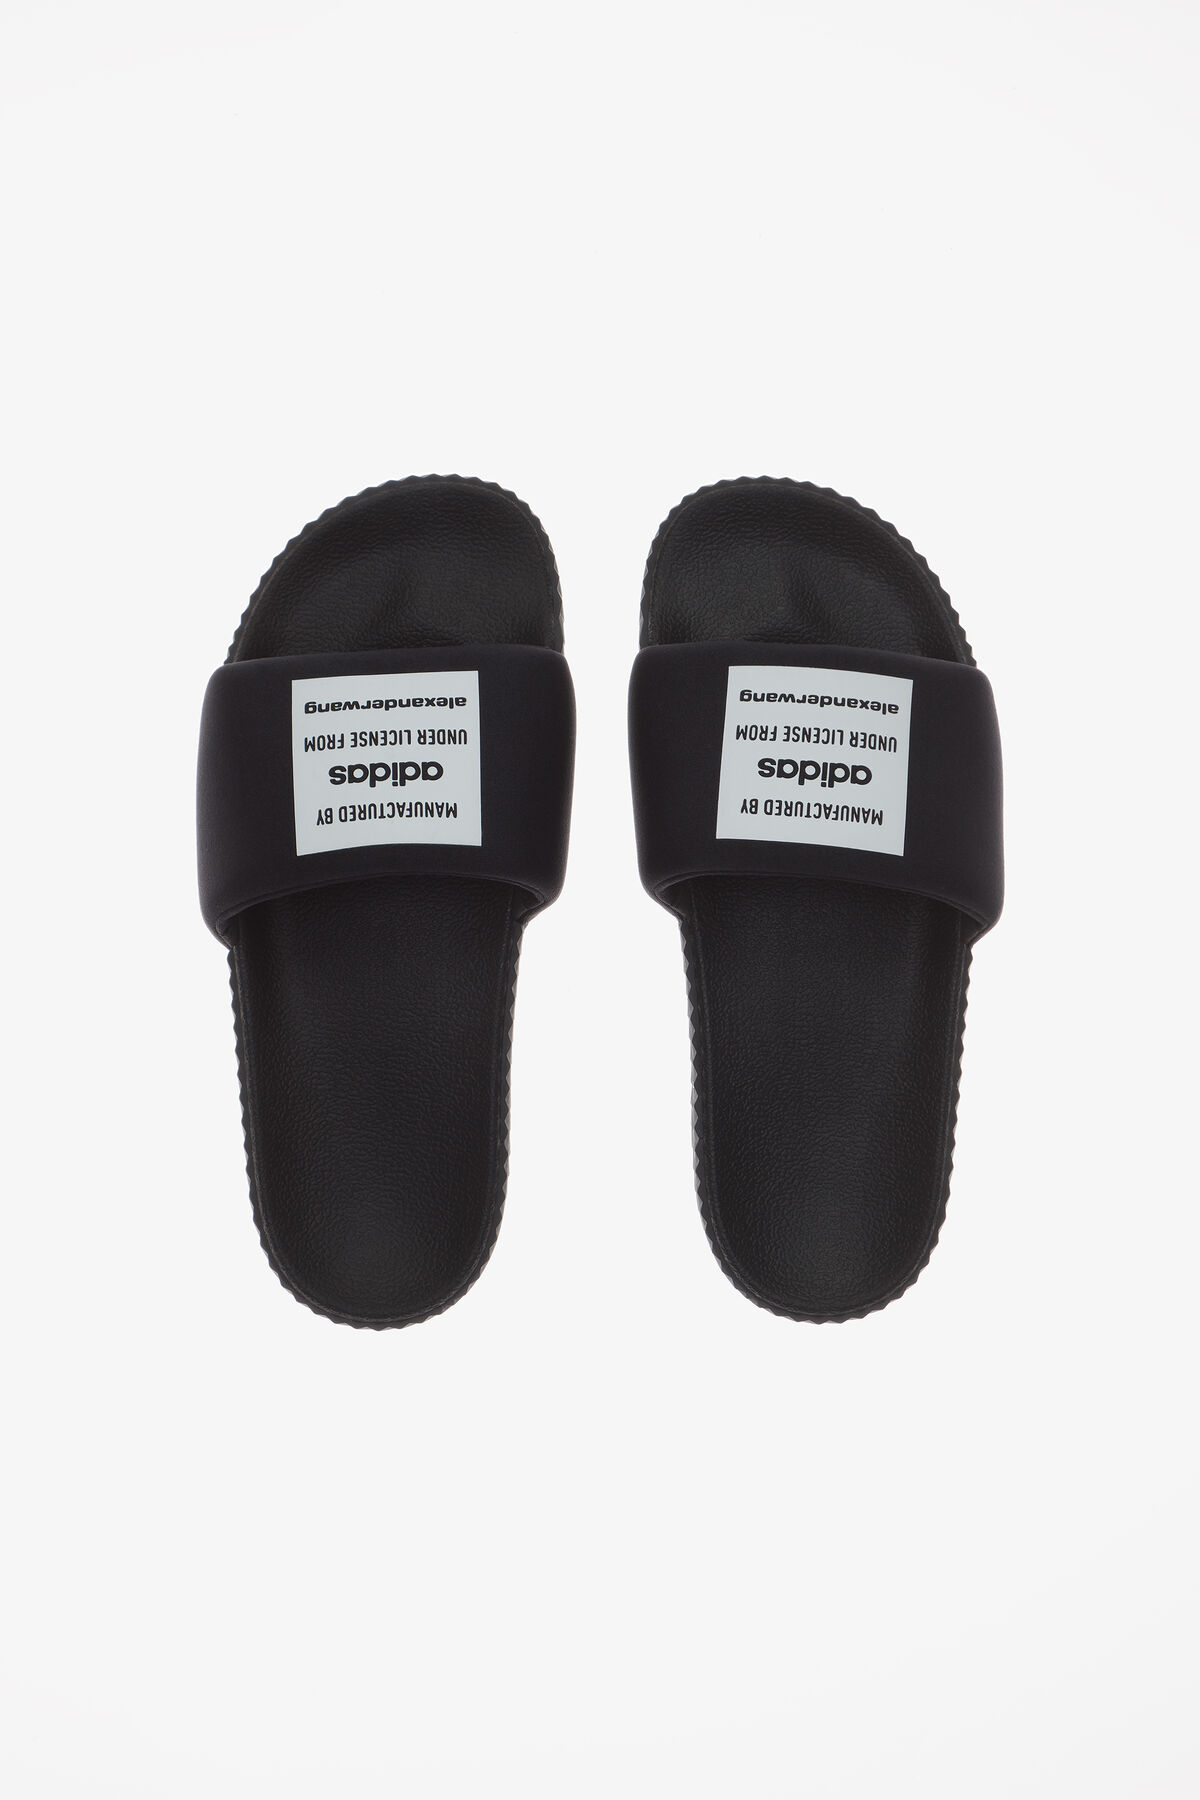 92681843b4 alexanderwang - shop men's clothing, shoes, and accessories from ...